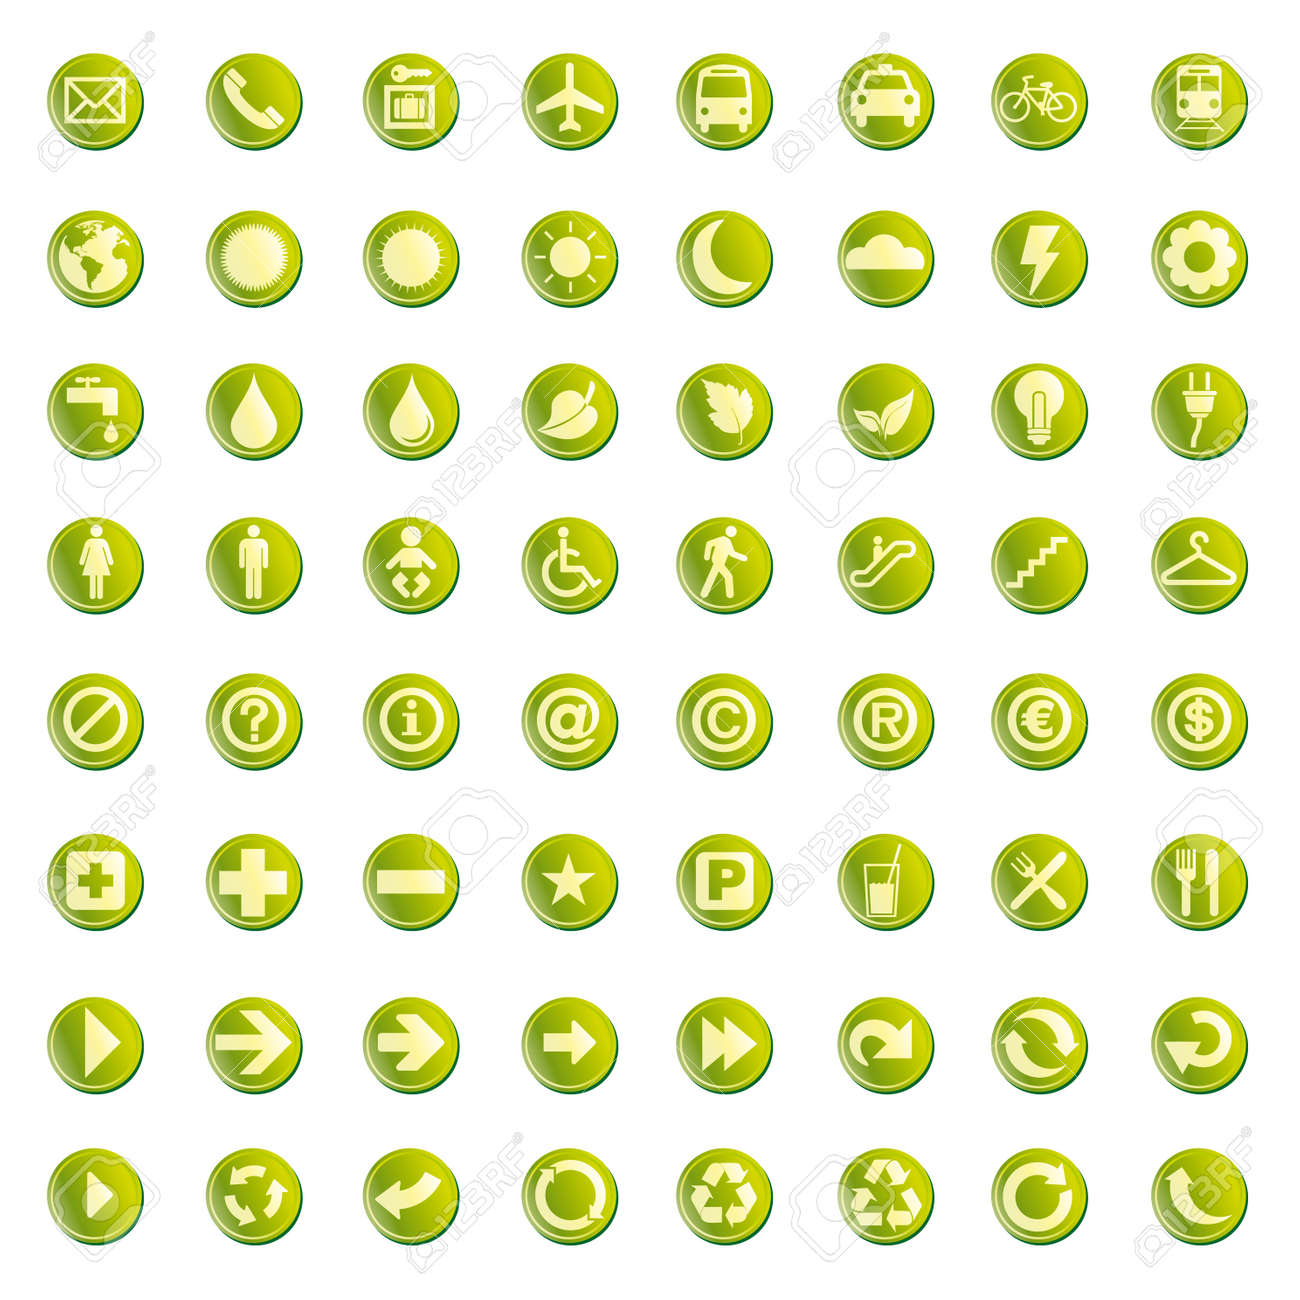 64 set presentation buttons icons symbol web eco. Stock Vector - 7167017